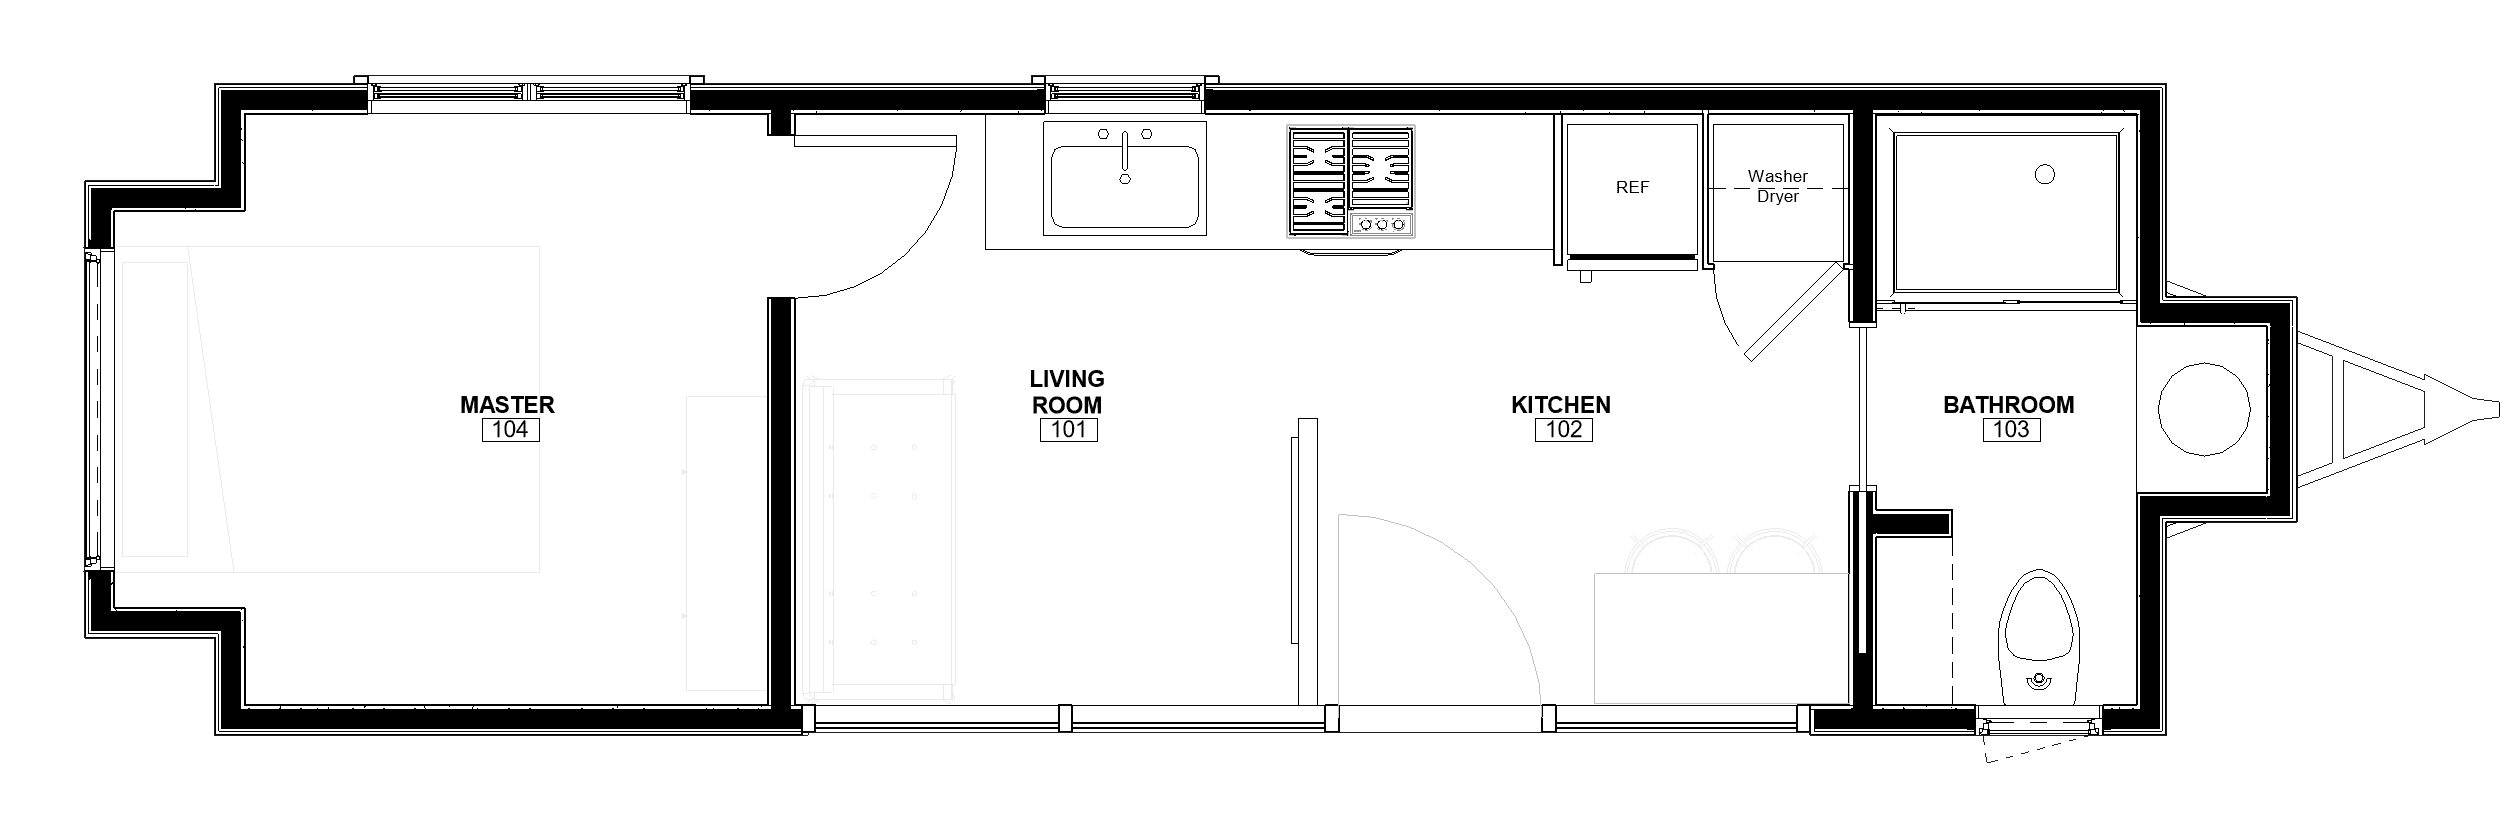 30ft Master on Main The Etowah floor plan